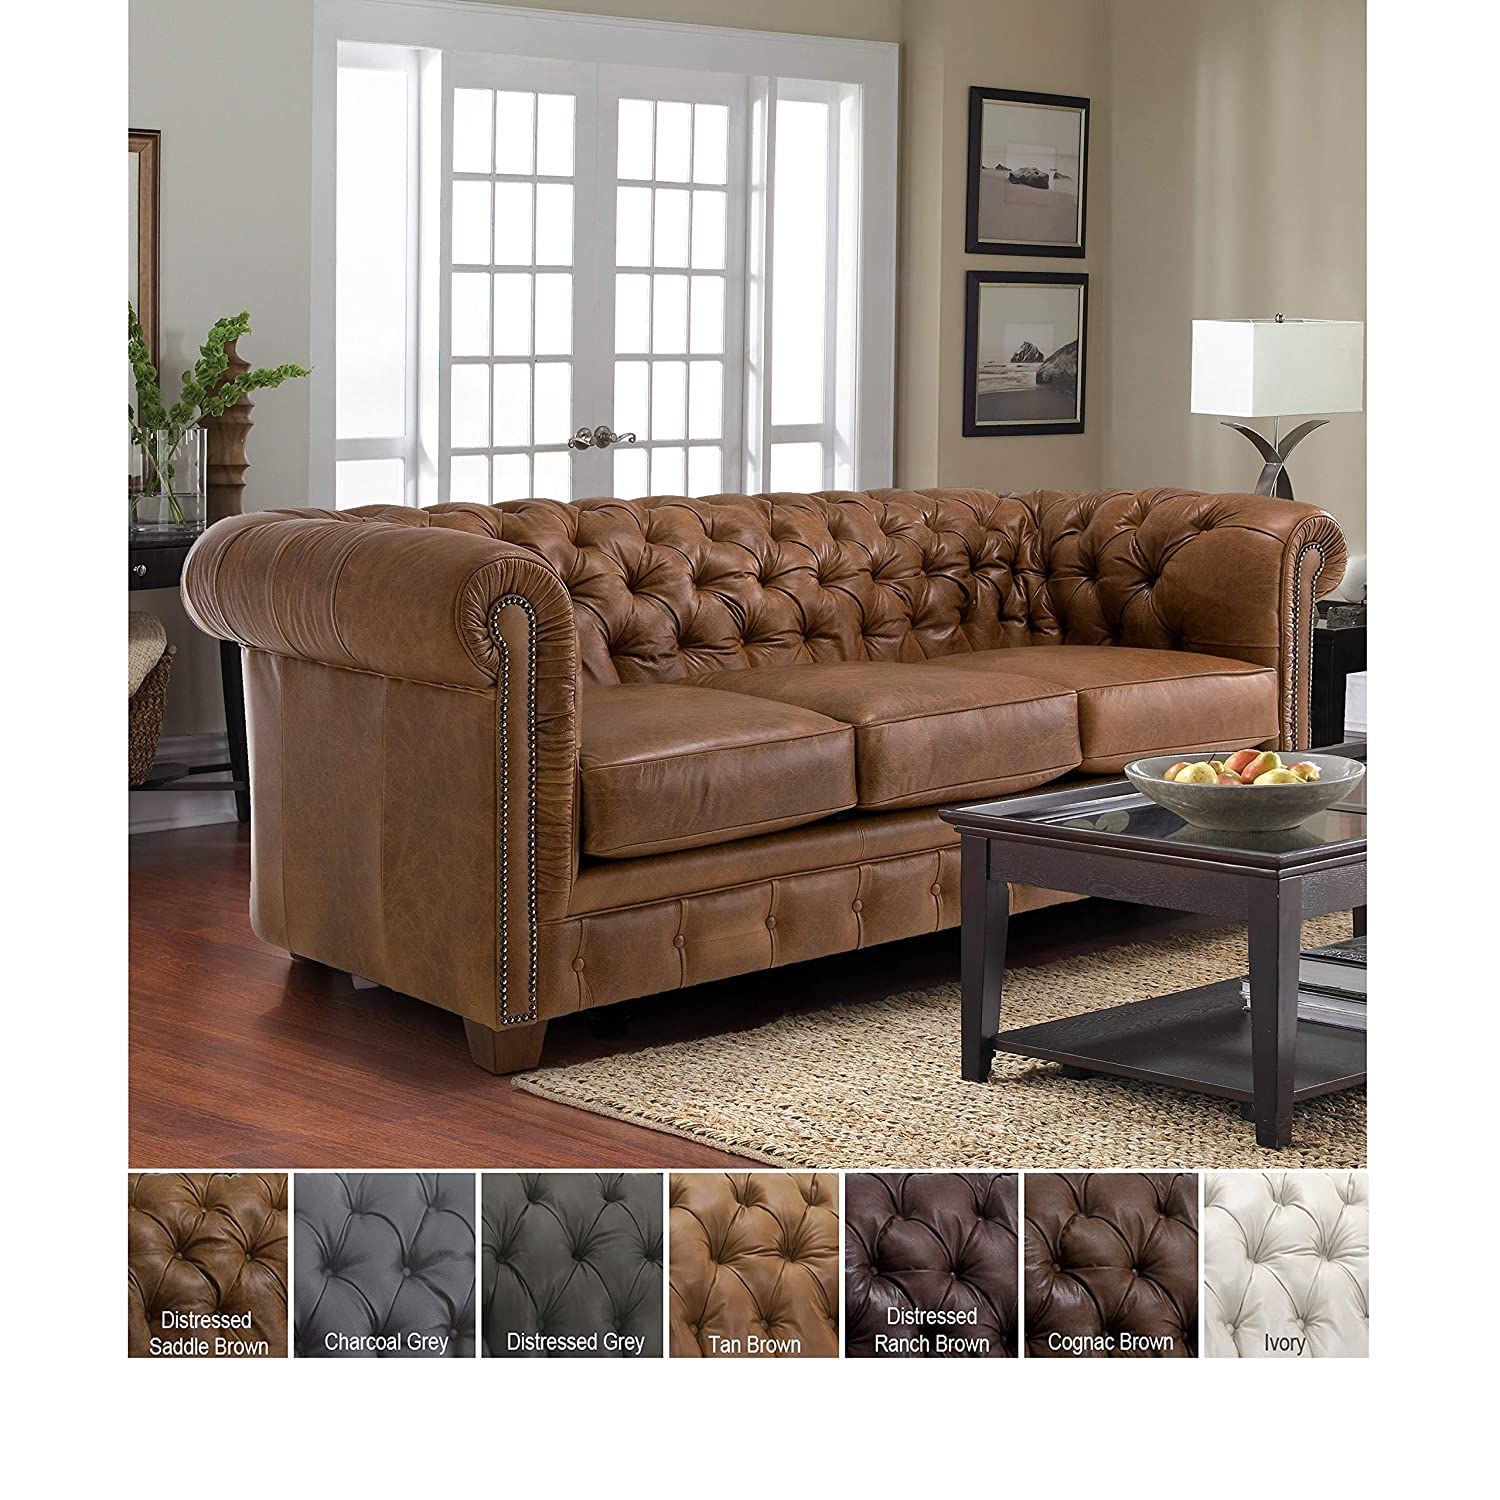 Marvelous Sofaweb Com Hancock Tufted Top Grain Italian Leather Chesterfield Sofa Distressed Saddle Brown Pabps2019 Chair Design Images Pabps2019Com